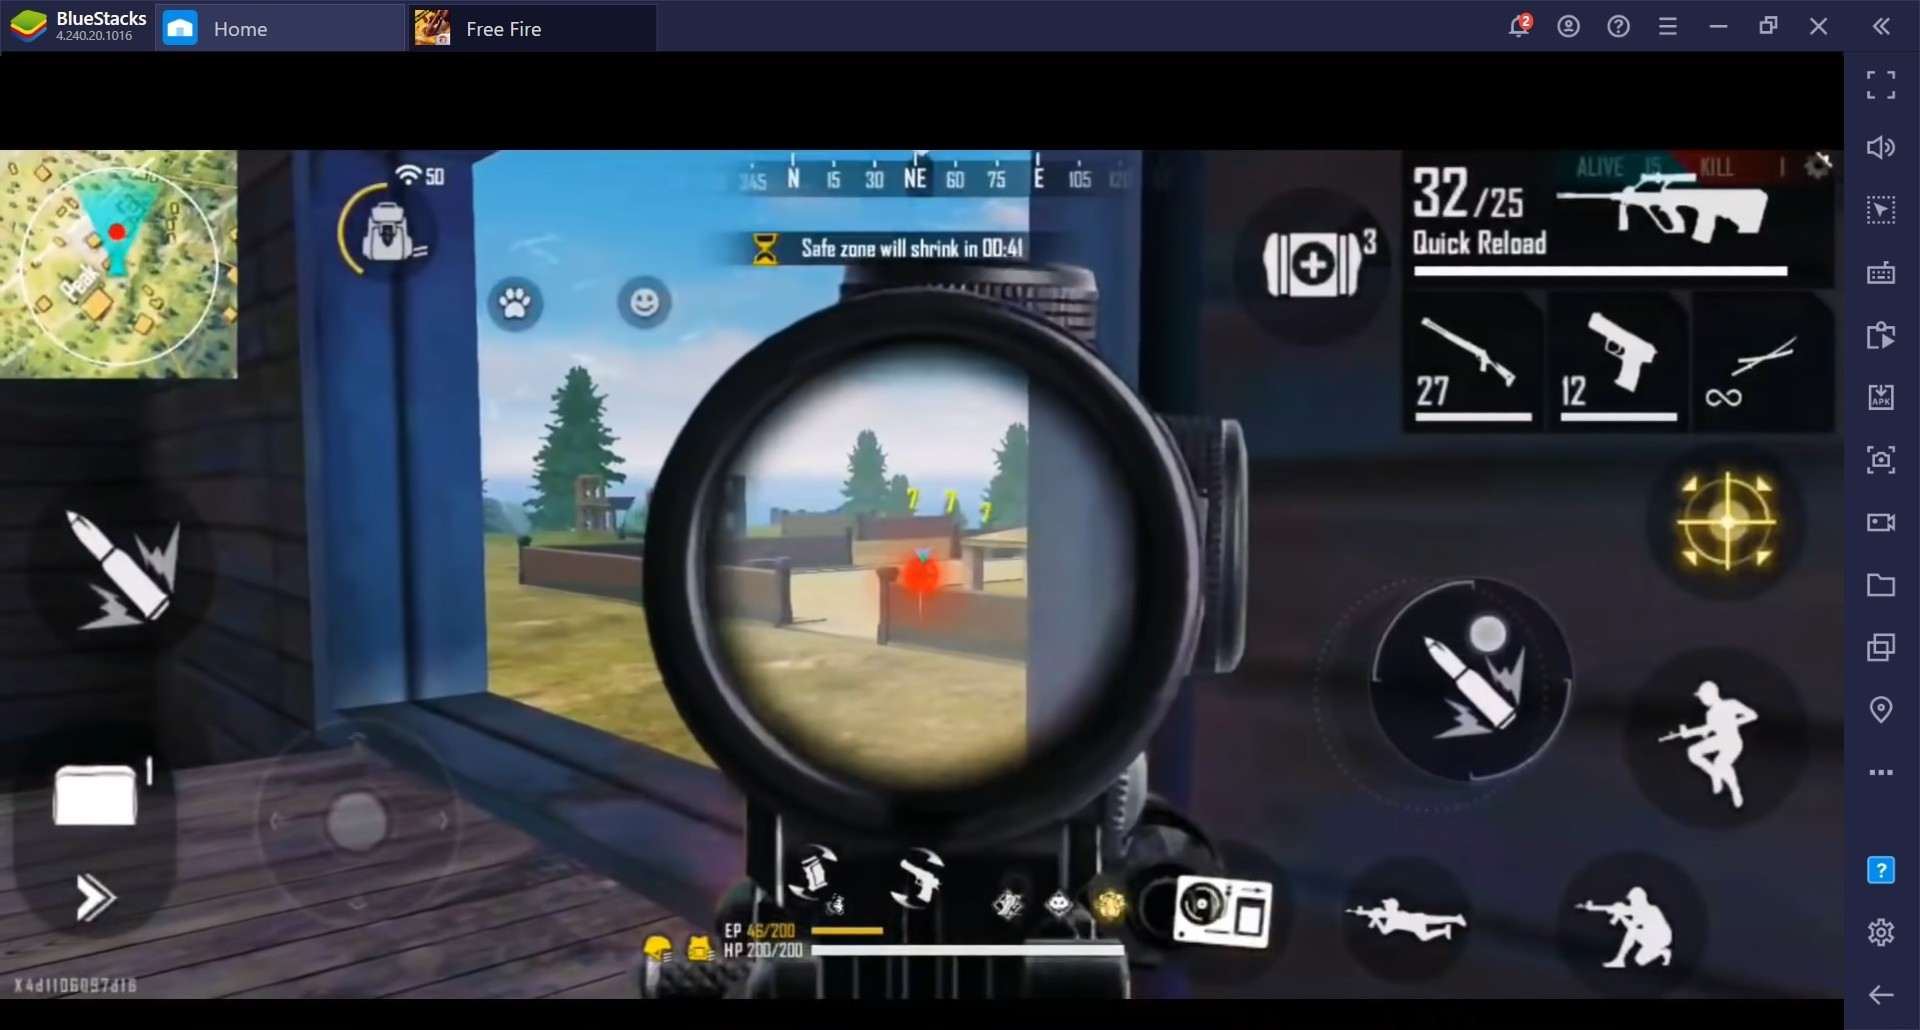 Push Through to the Top of Free Fire Rankings Quickly with This Guide